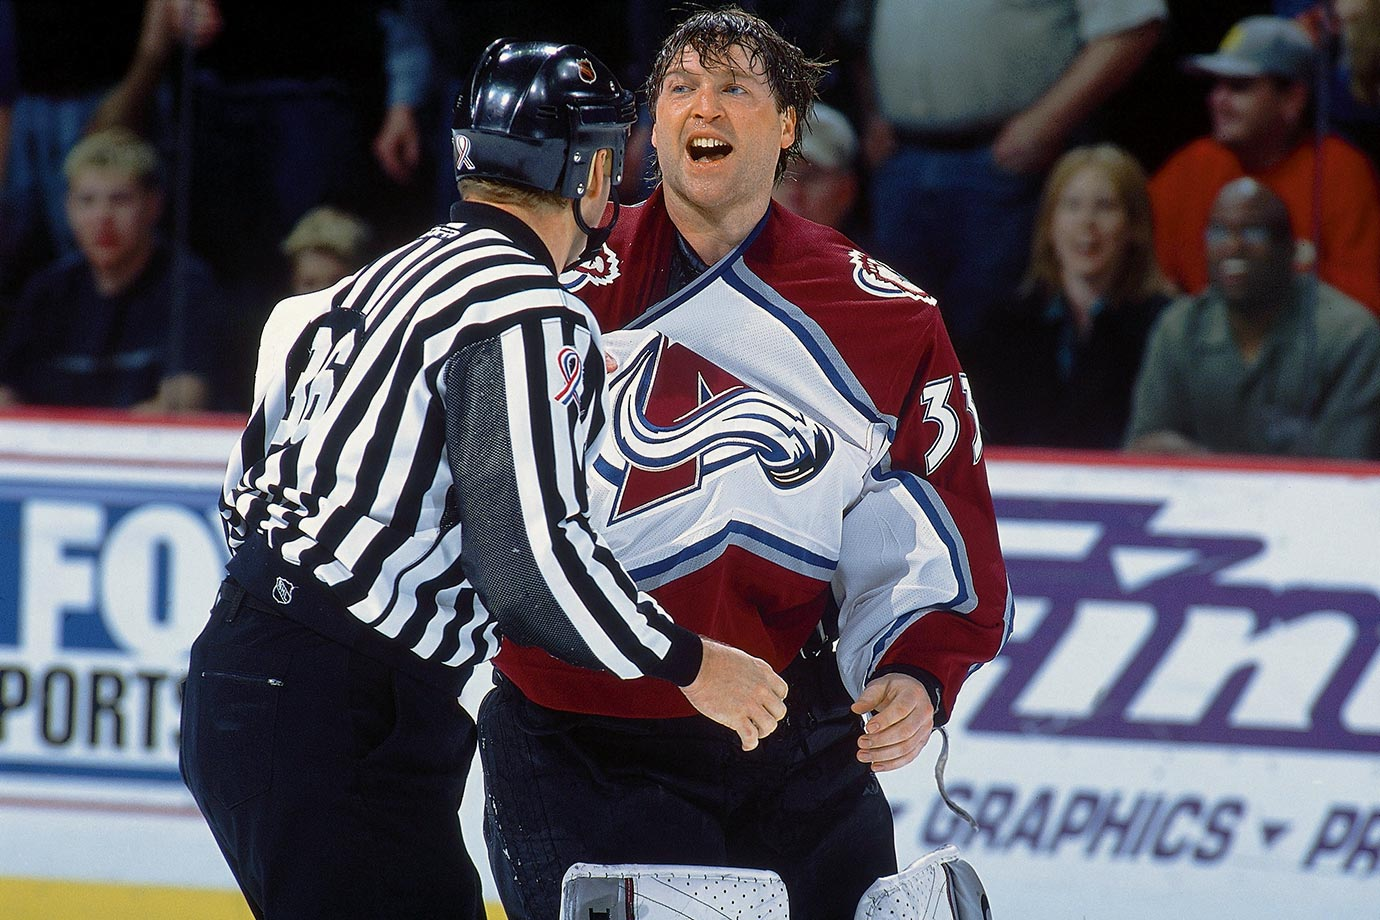 March 12, 2002 — Avalanche vs. Red Wings